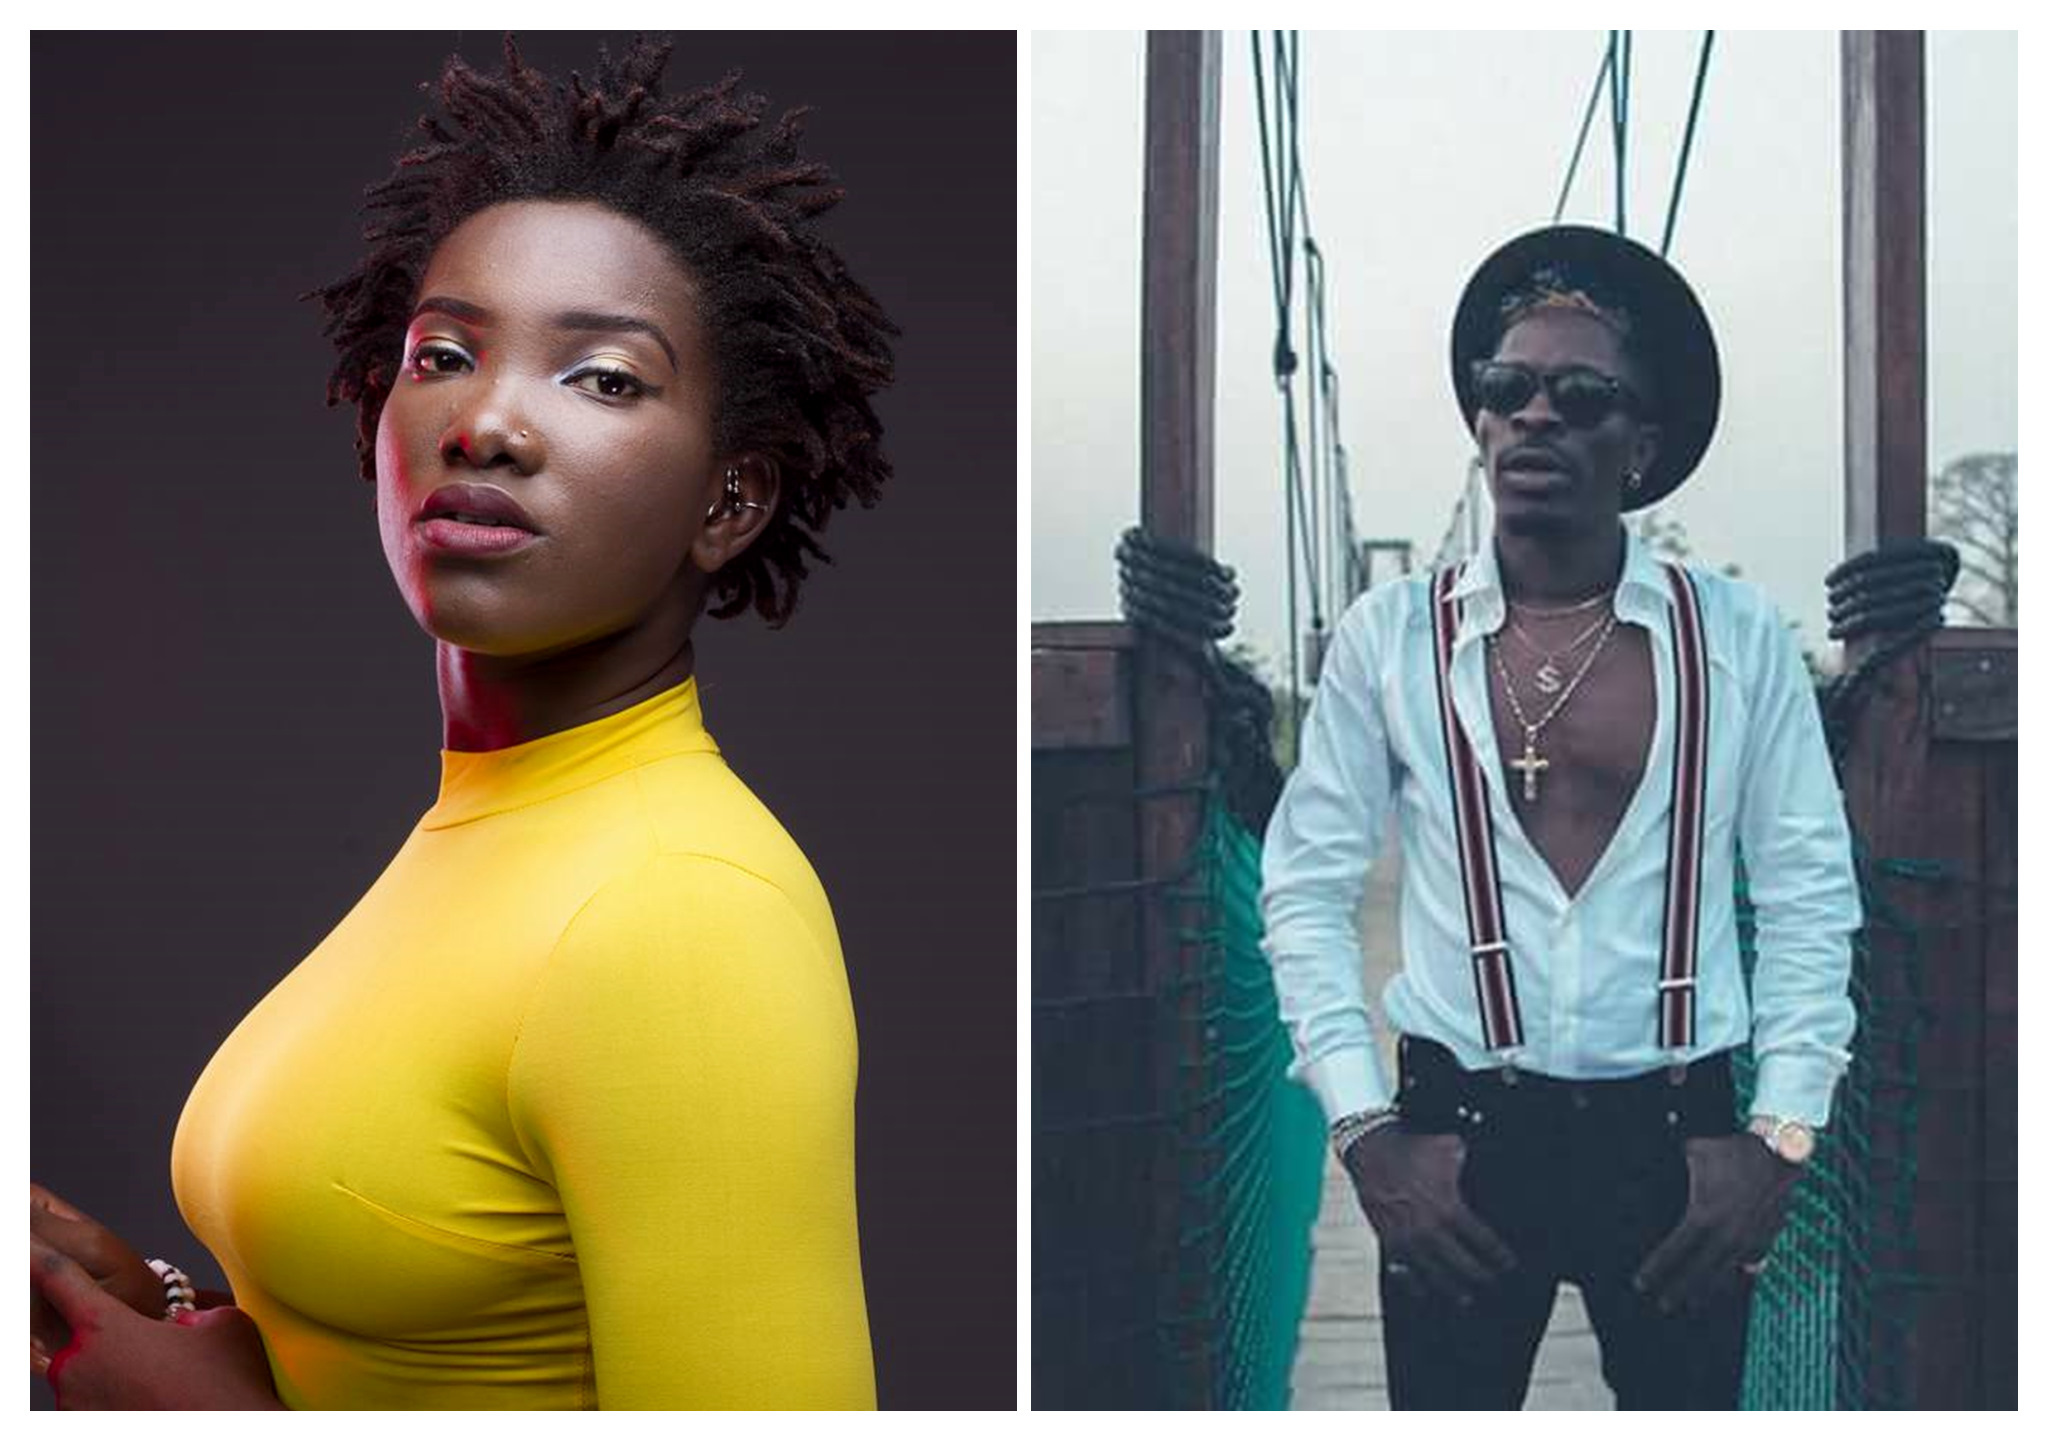 VGMA 2018: 3 Artistes That Could Possibly Win The 'Artiste Of The Year' Award